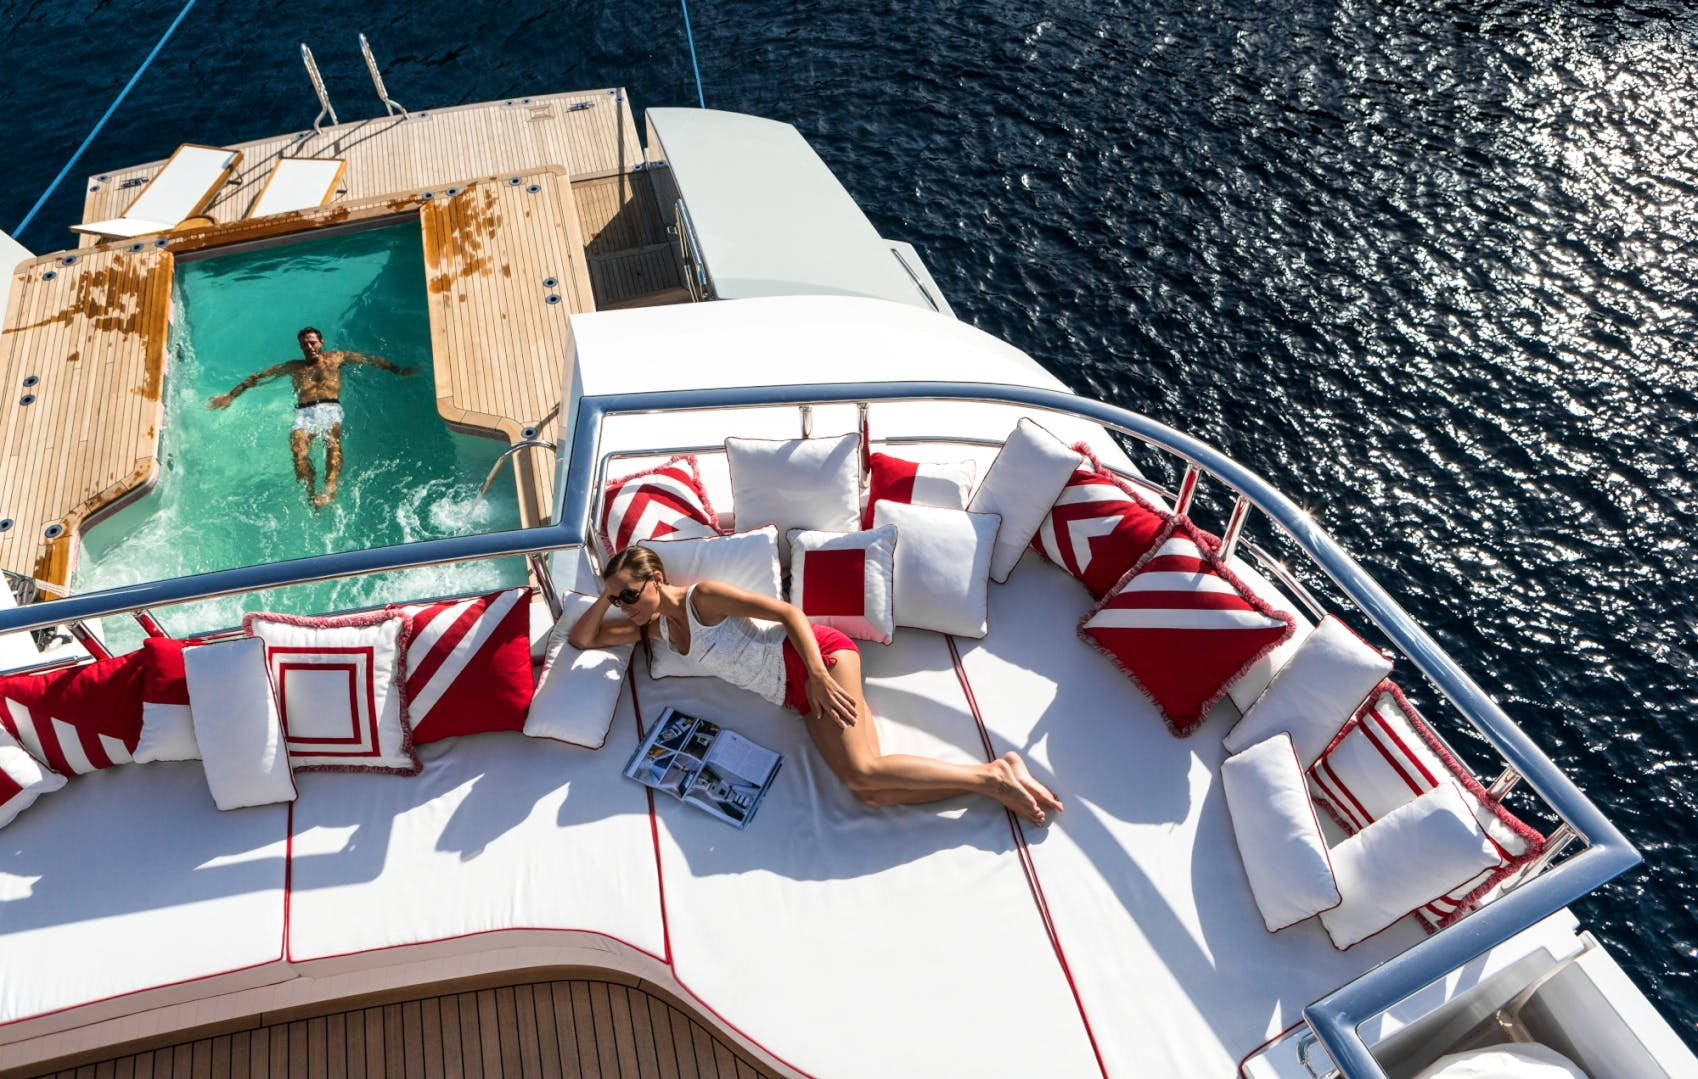 236-foot (72m) AXIOMA charter yacht sundeck with a girl reading and a guy in the pool on the main deck aft swimming